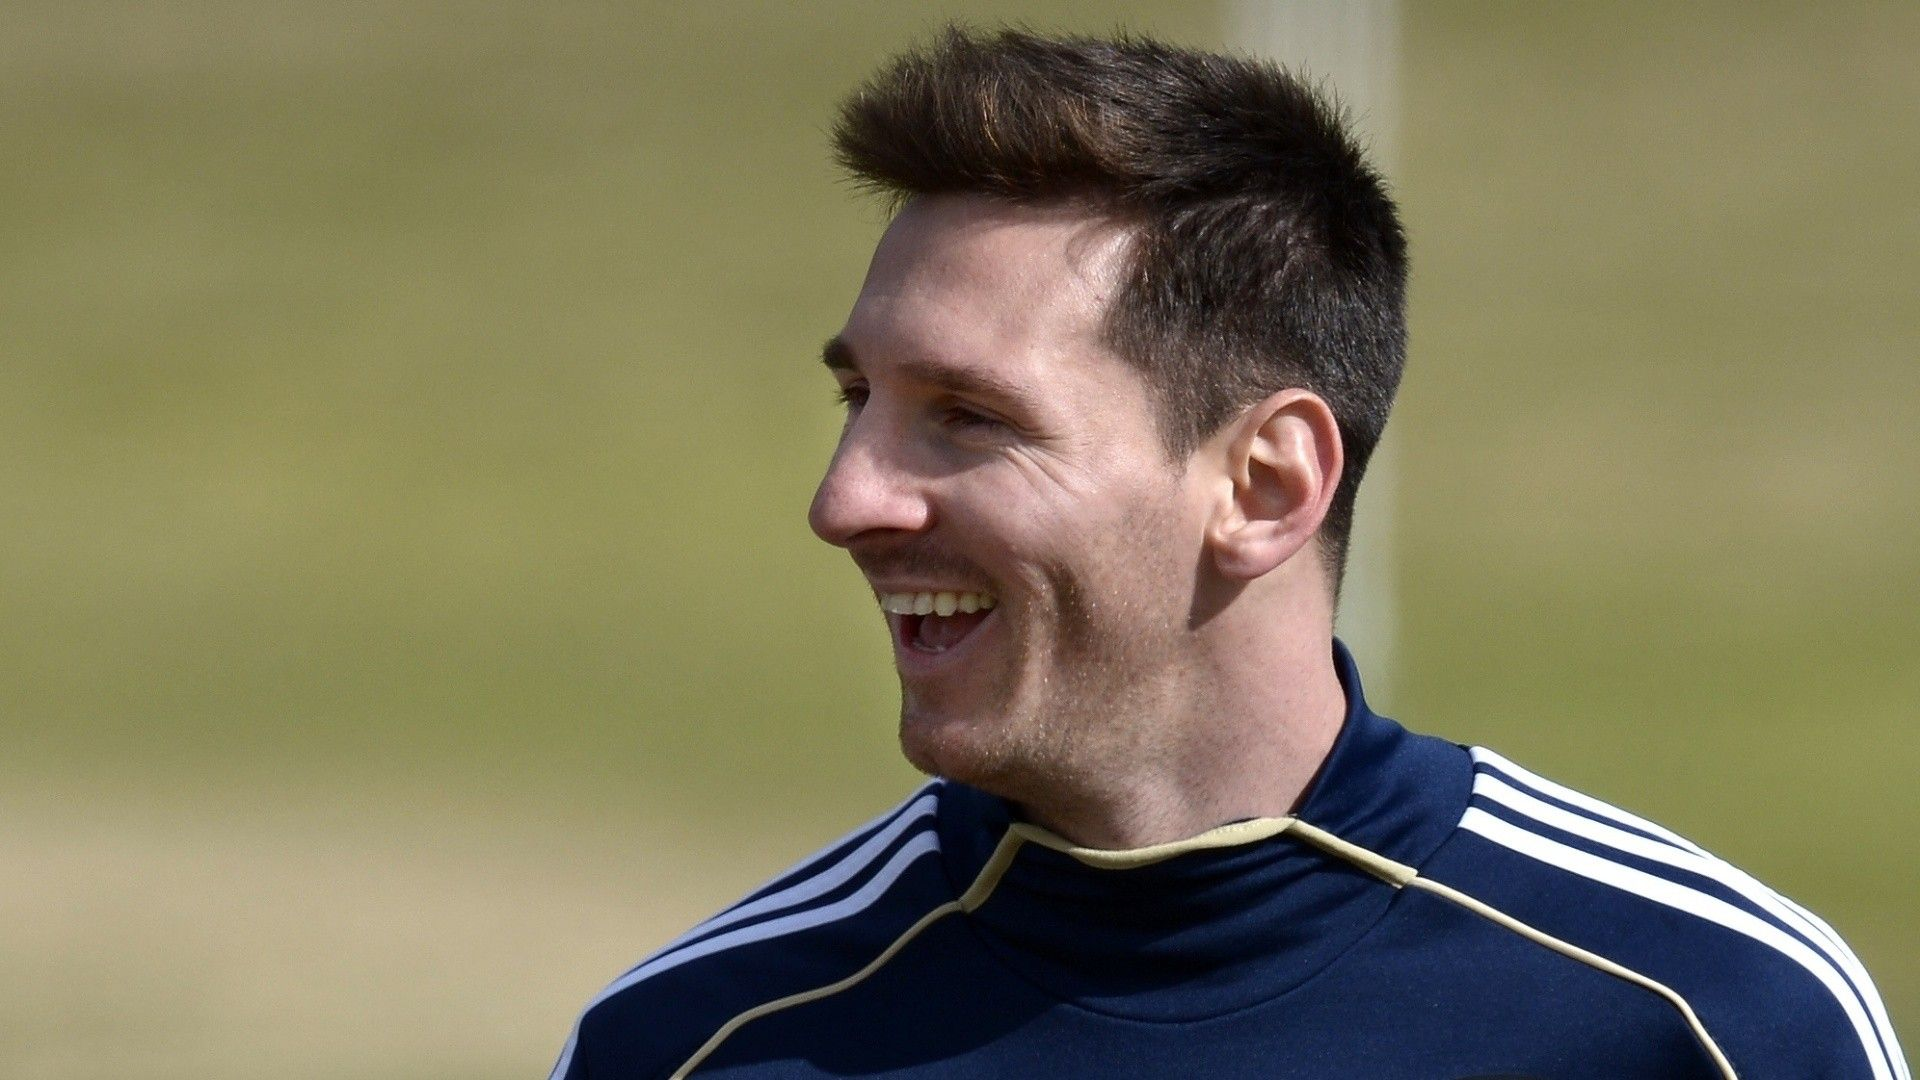 lionel messi hair style messi hairstyle 2013 2014 www pixshark images 5841